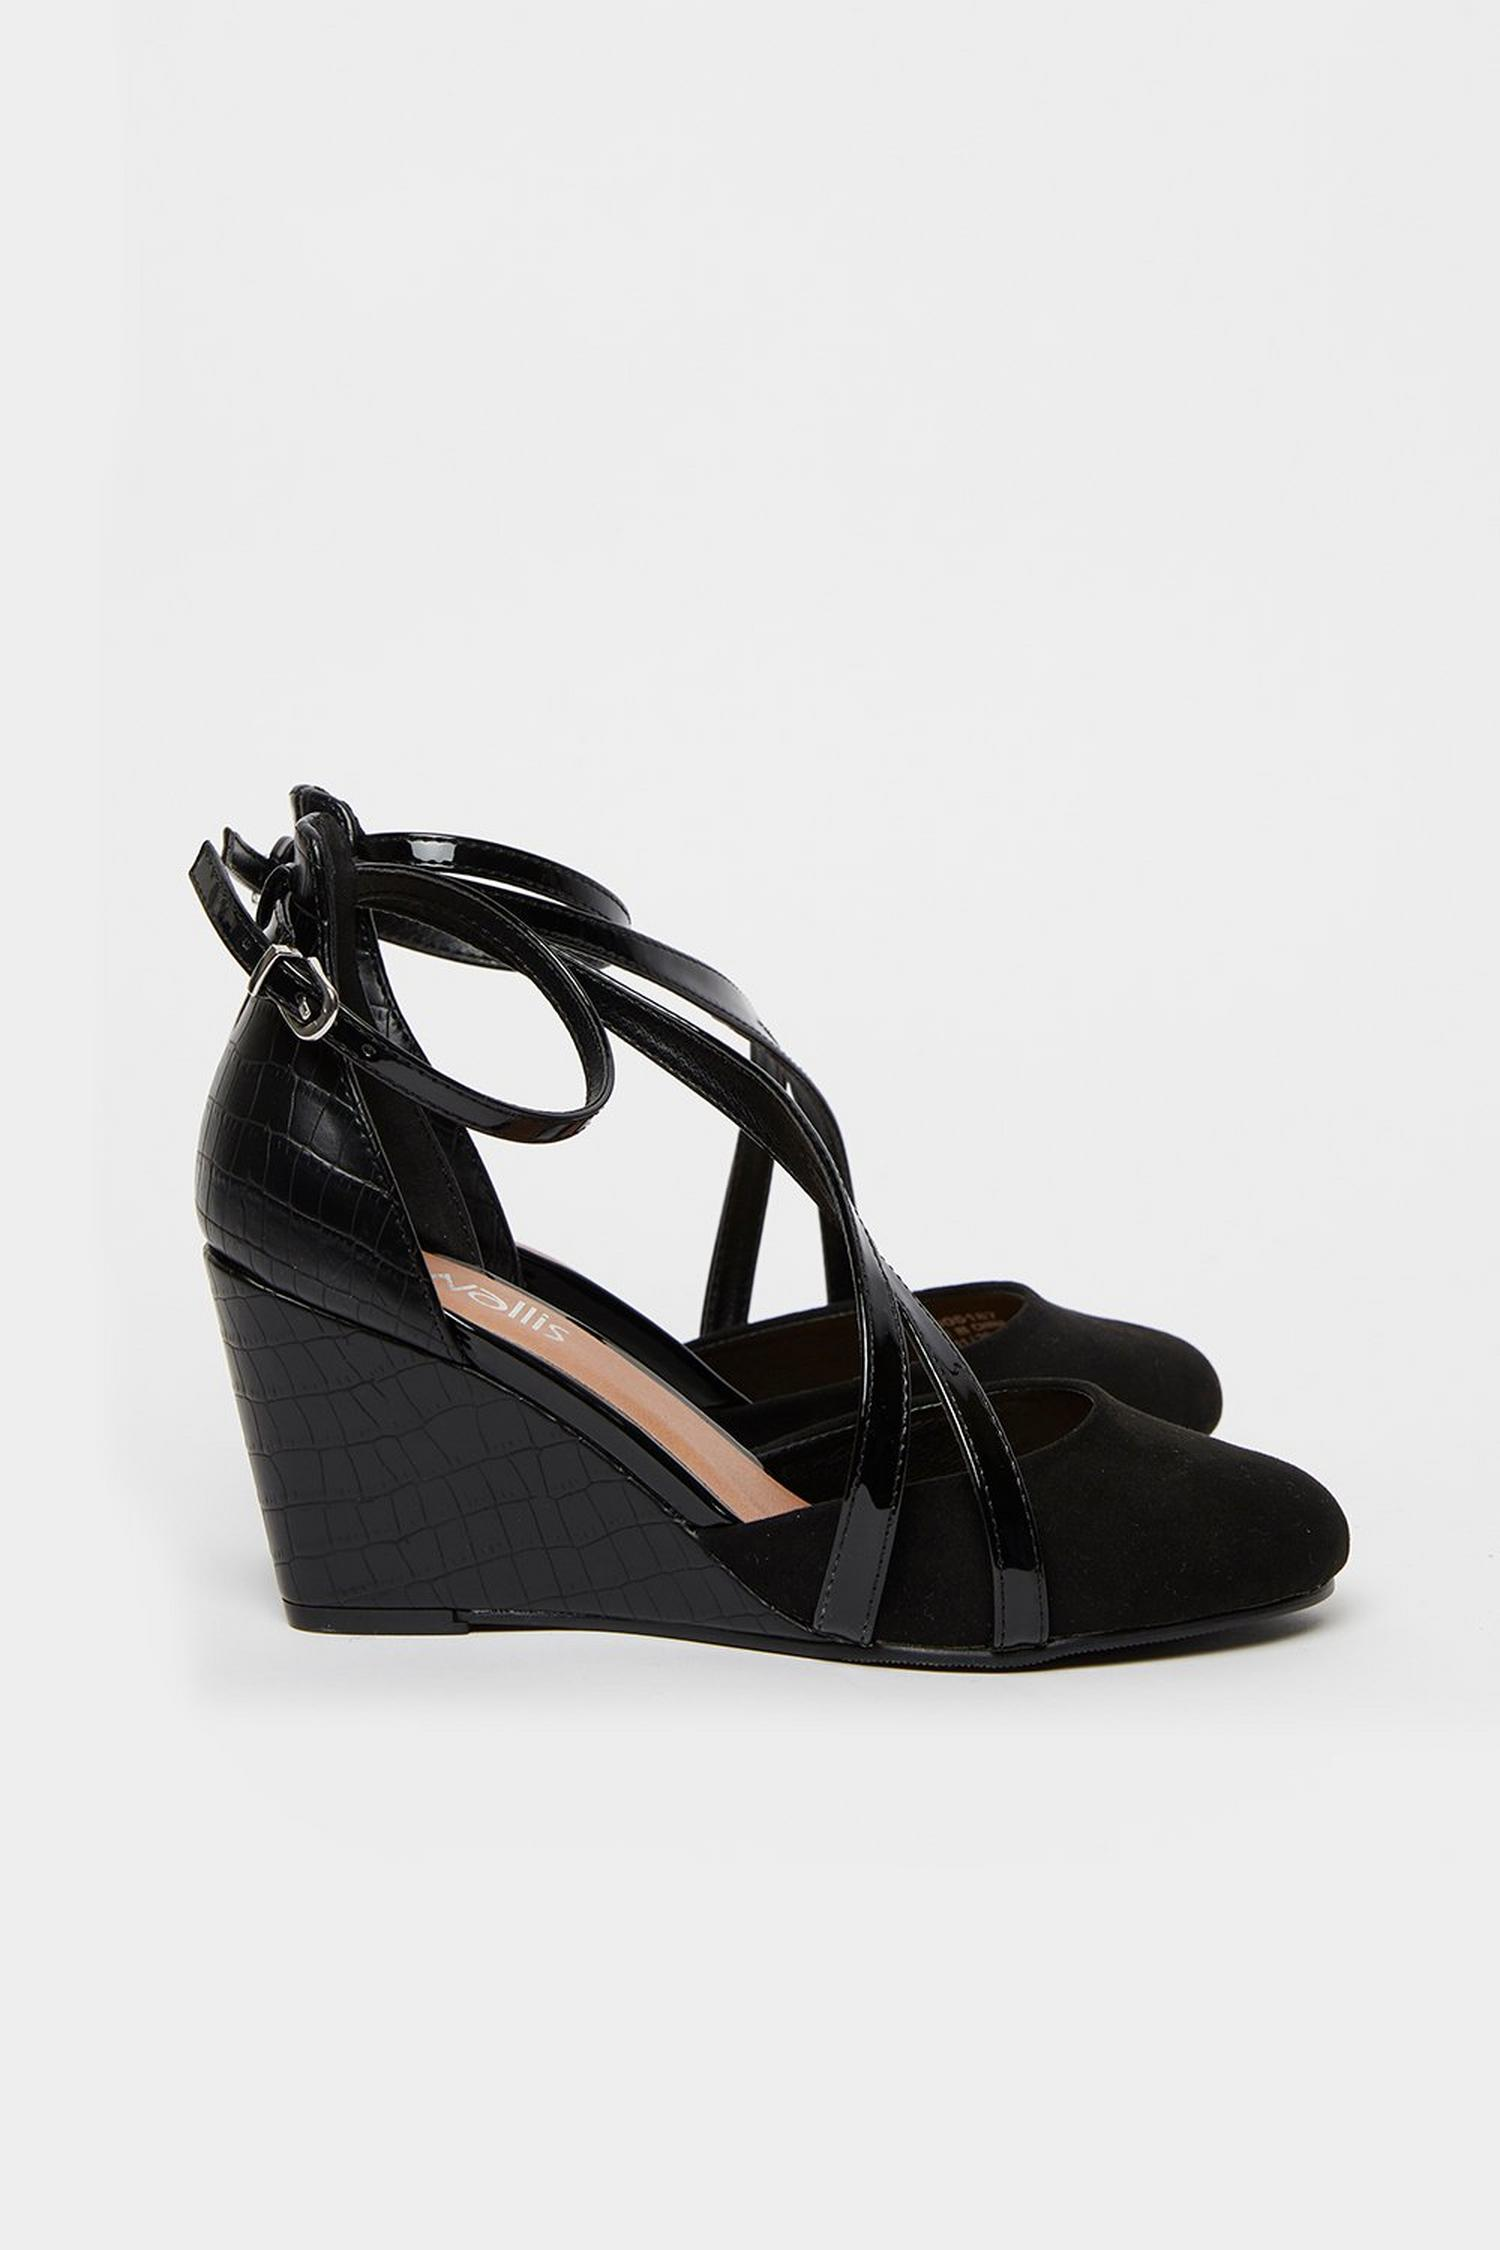 105 Black Double Strap Wedge image number 2